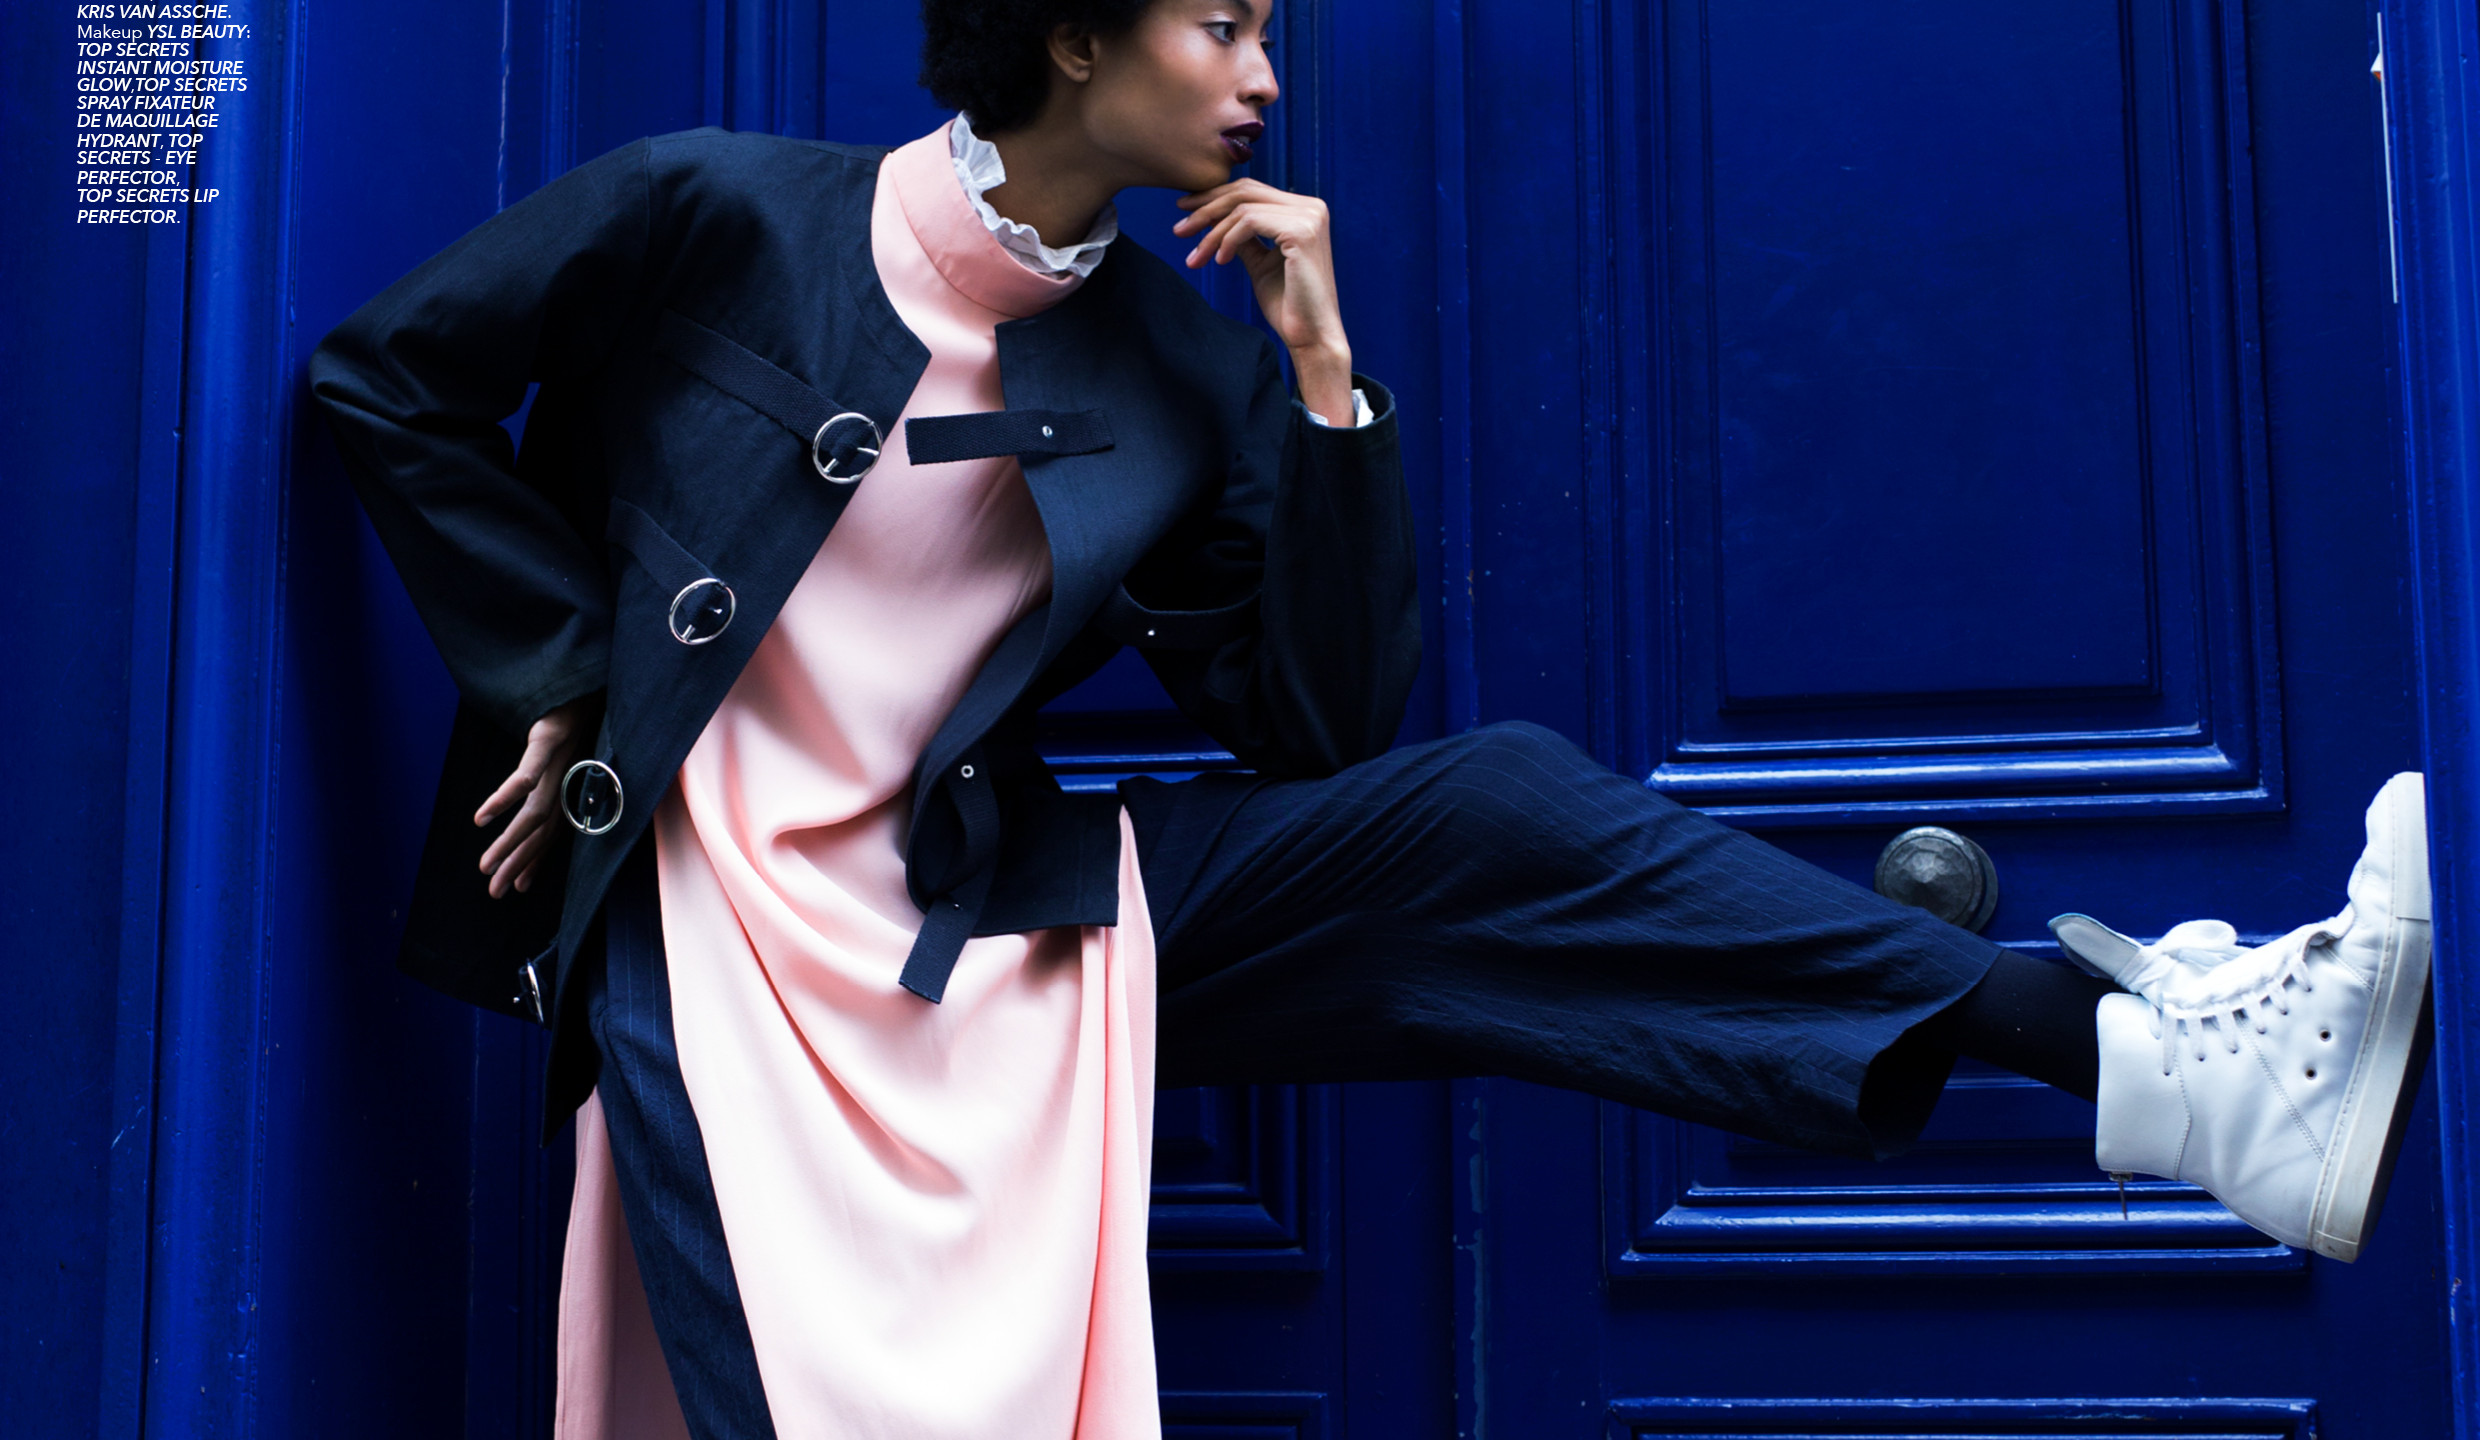 Black canvas jacket GNDR, pink long tunic KALYAH, navy striped pants HED MAYNER, shoes KRIS VAN ASSCHE. Makeup YSL BEAUTY.